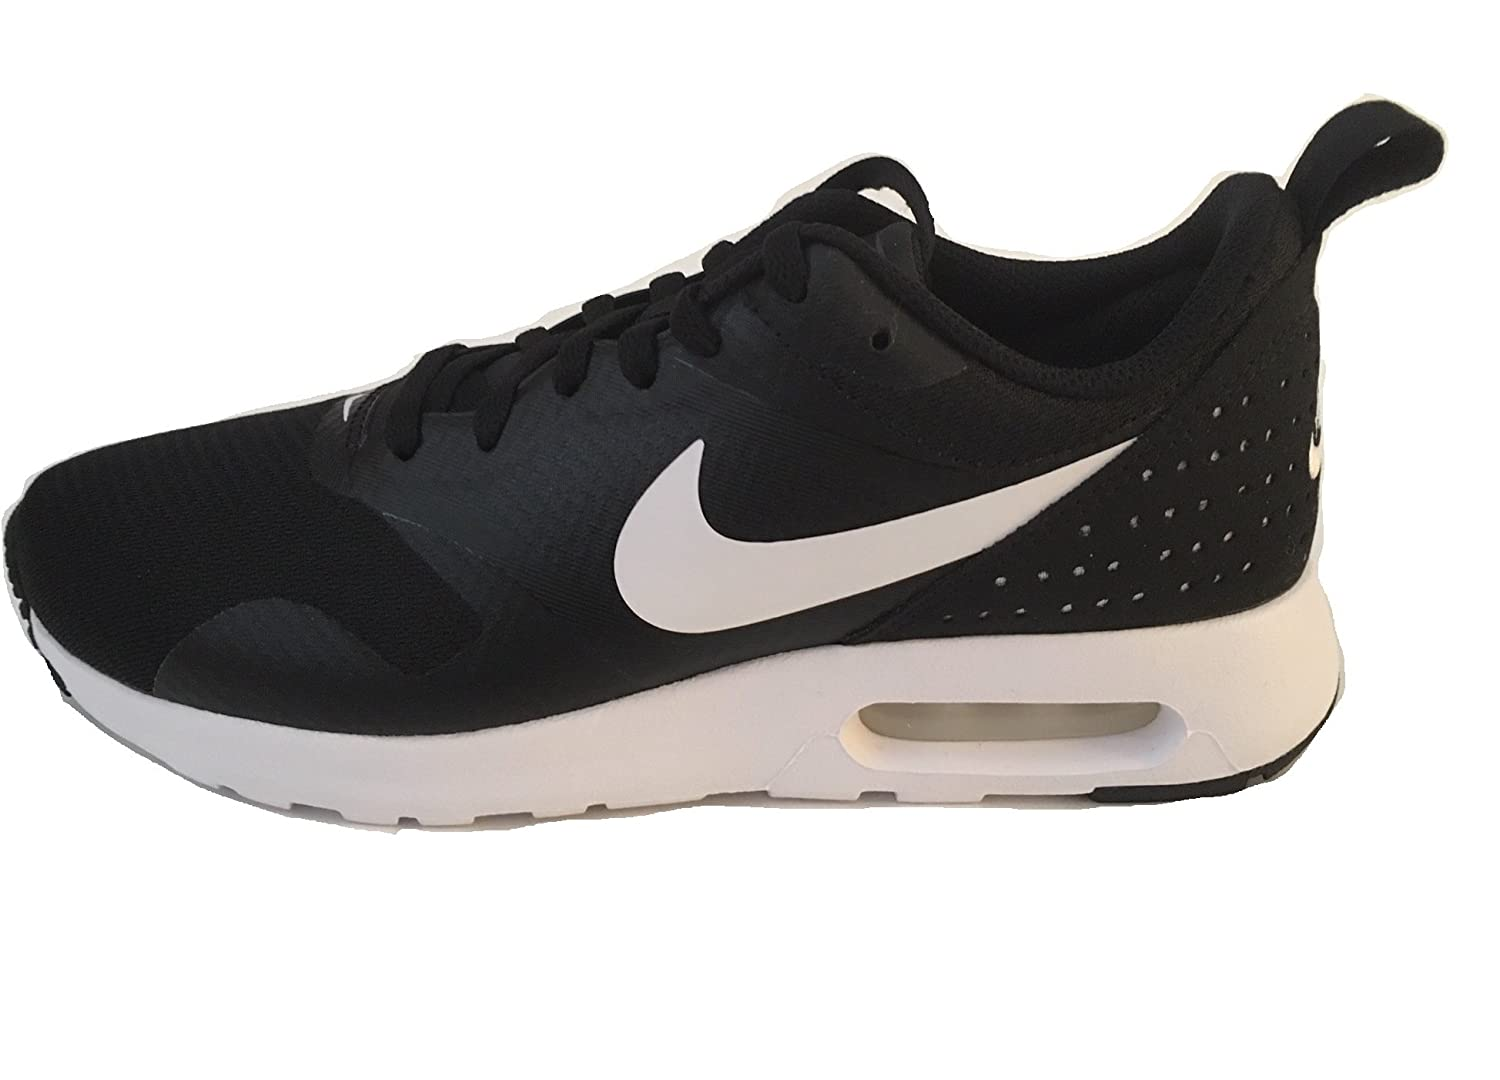 Nike Women's Air Max Tavas Running Shoes Black White 916791 001 (8.5 B(M) US)